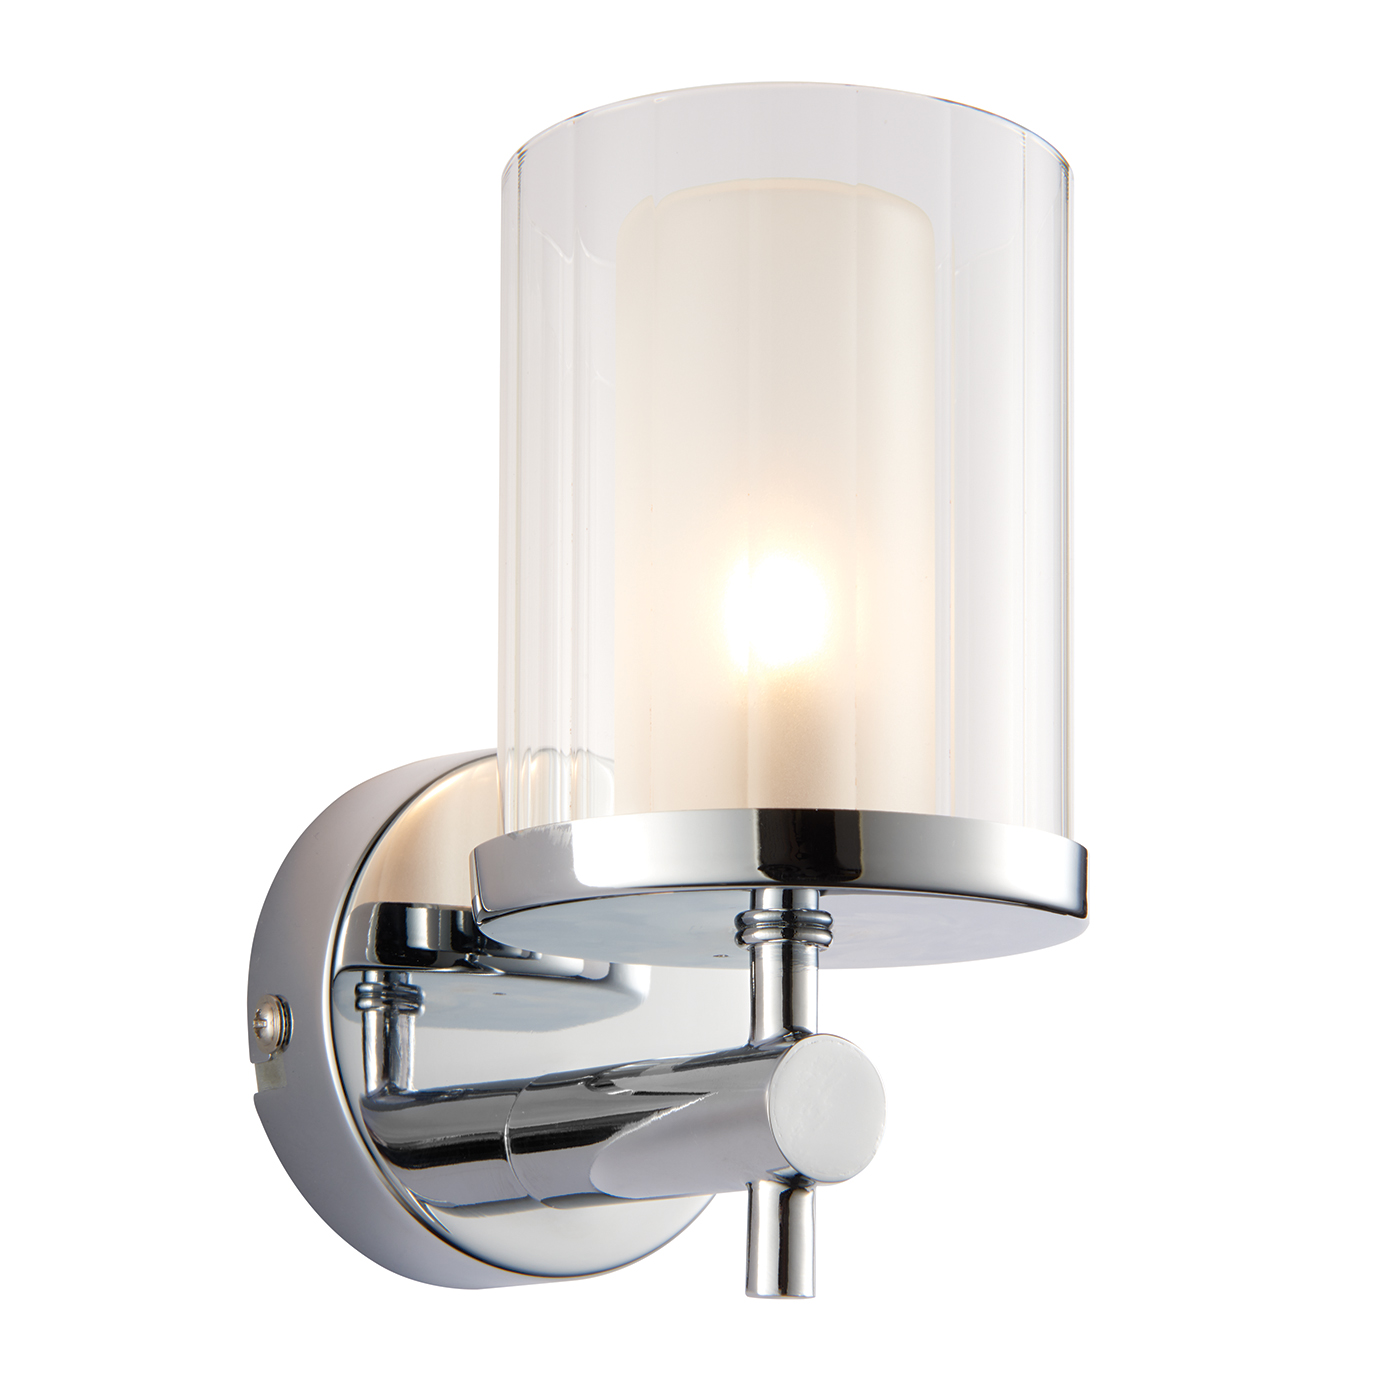 Endon Britton 1lt bathroom wall light IP44 18W Chrome & clear rippled glass Thumbnail 1